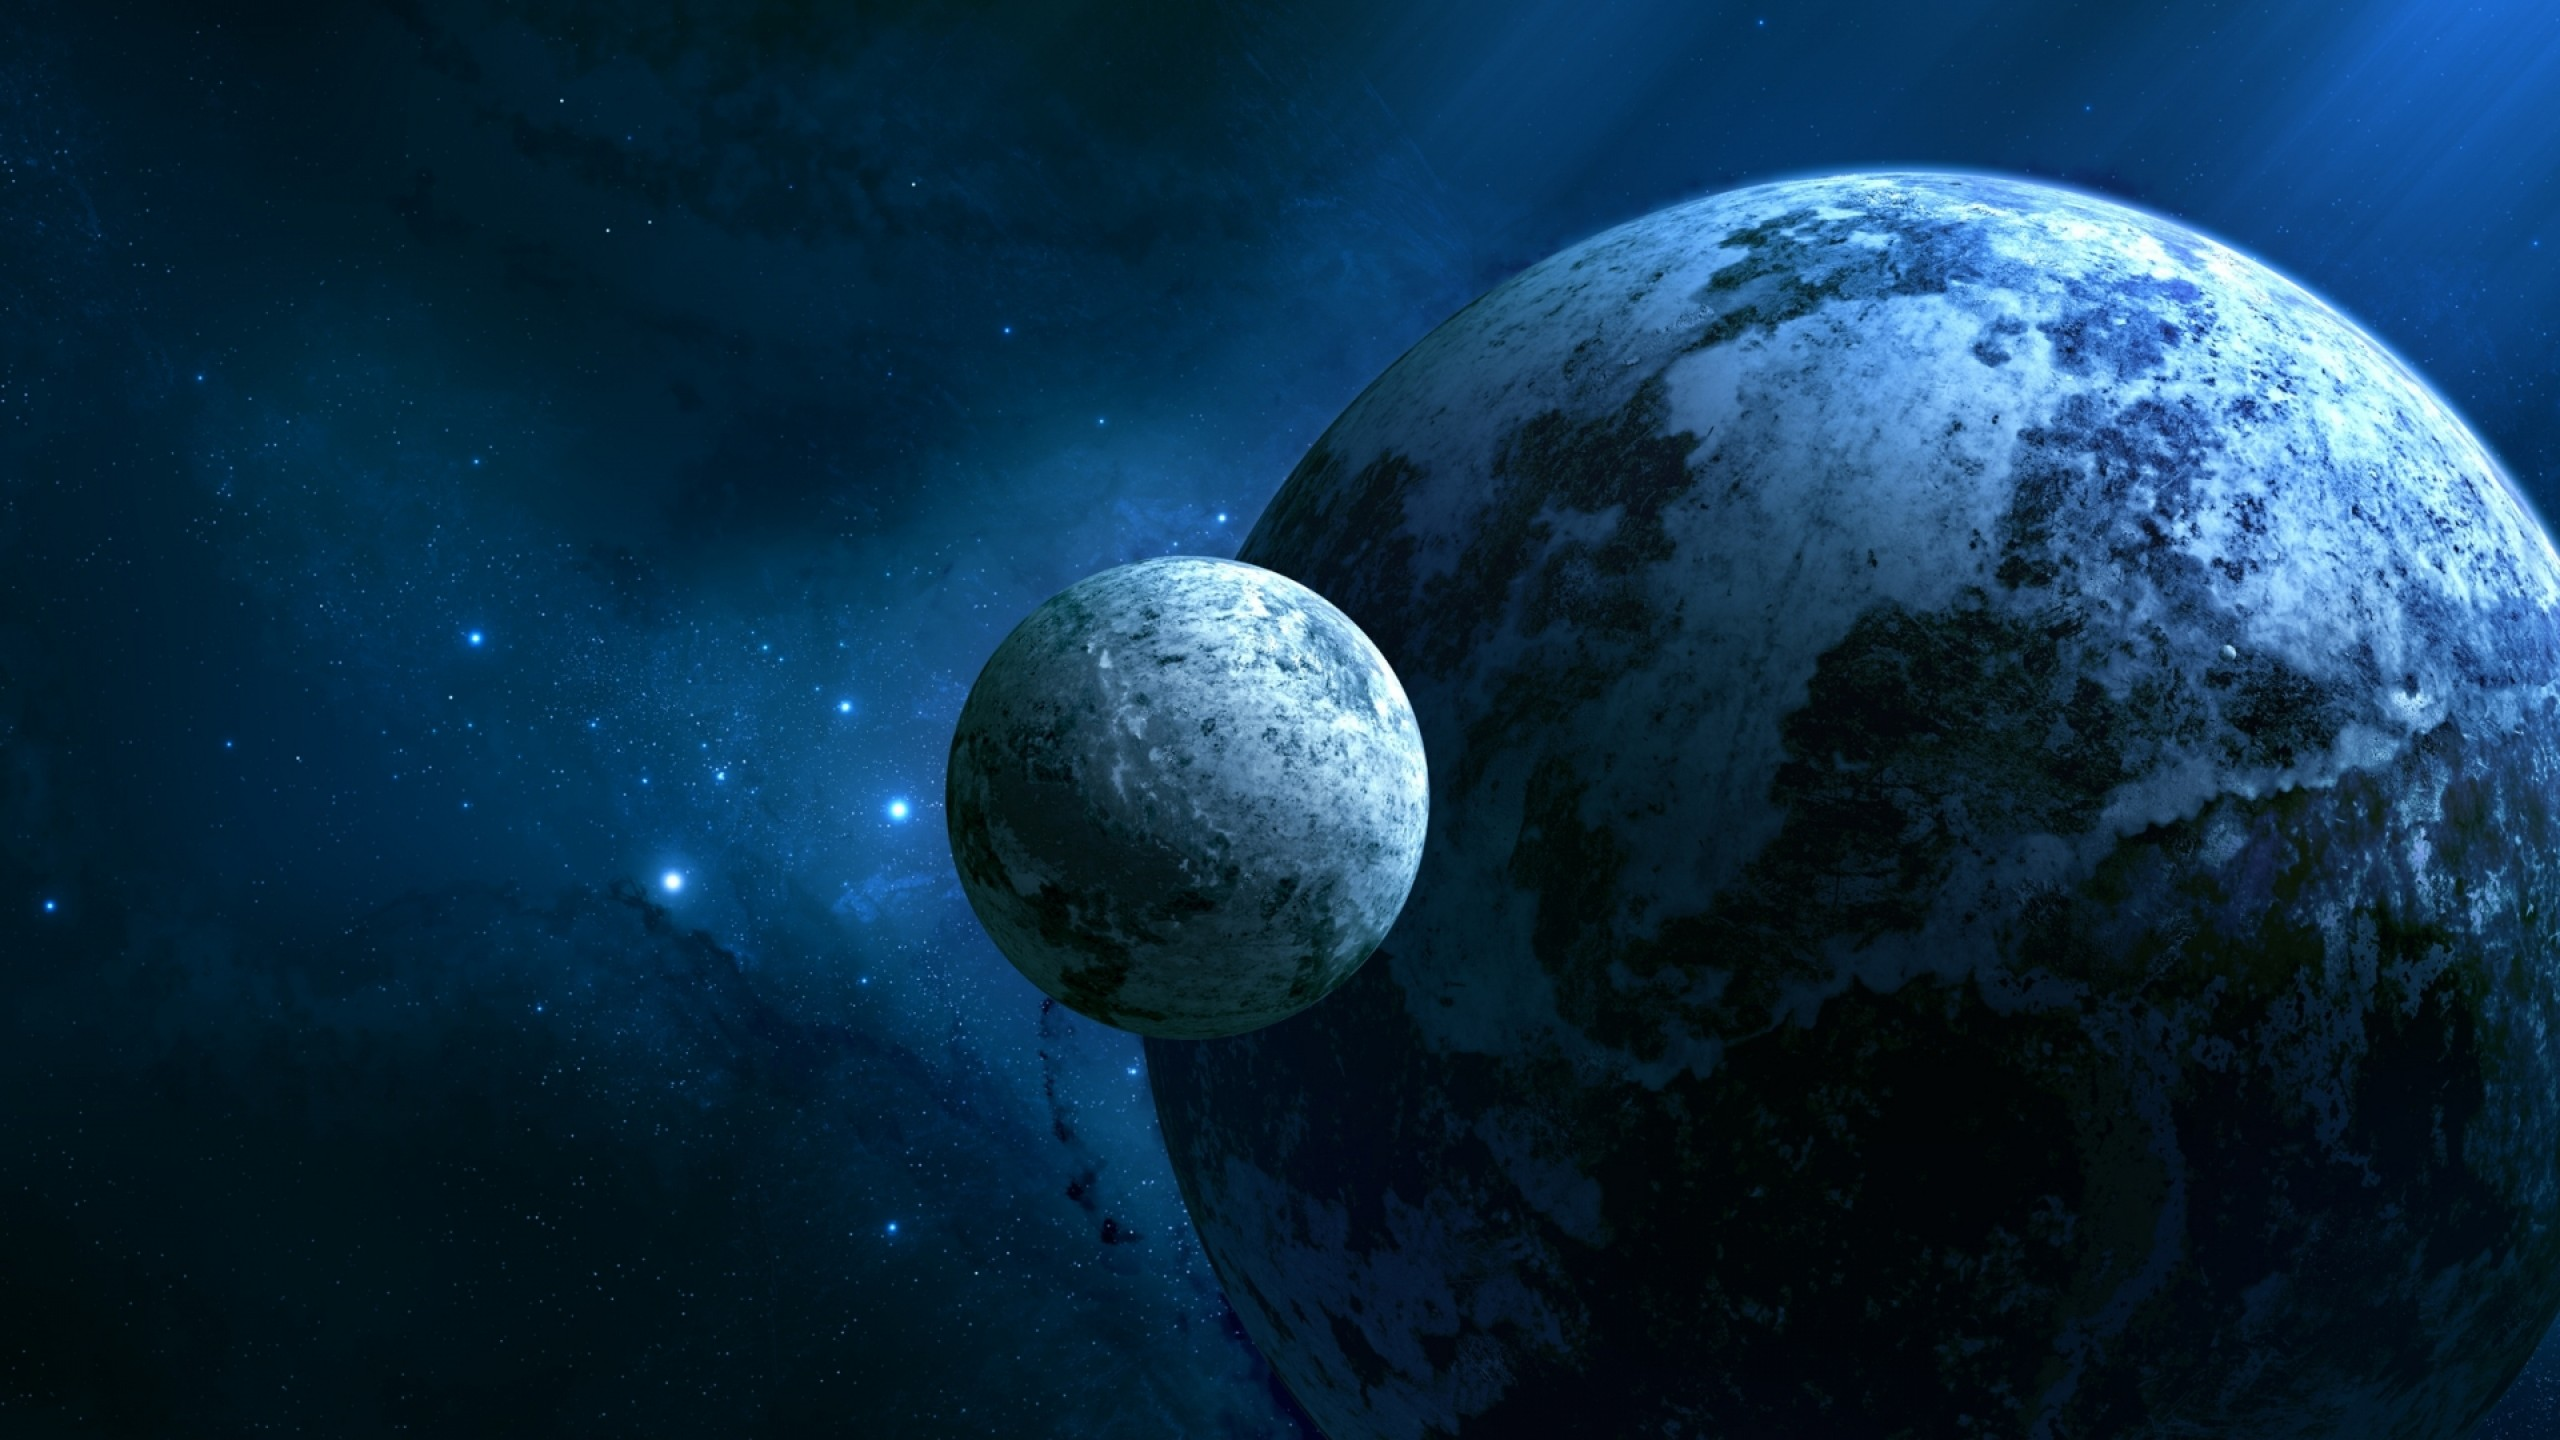 Outer Space Desktop Wallpaper: Cool Outer Space Wallpaper